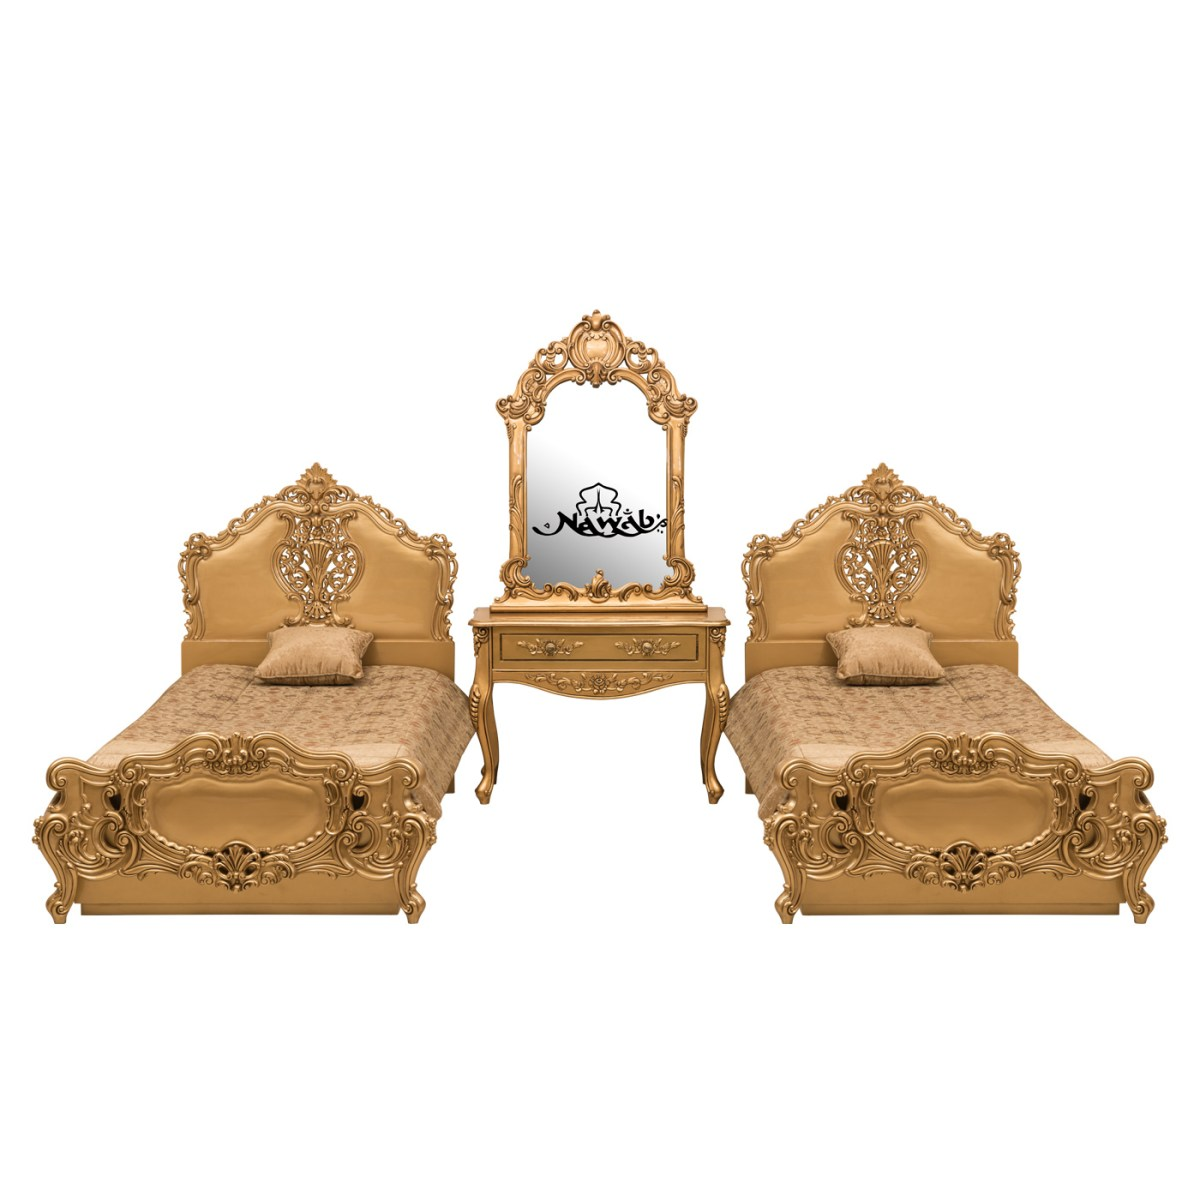 golden-pu-polish-solid-wooden-teak-with-carving